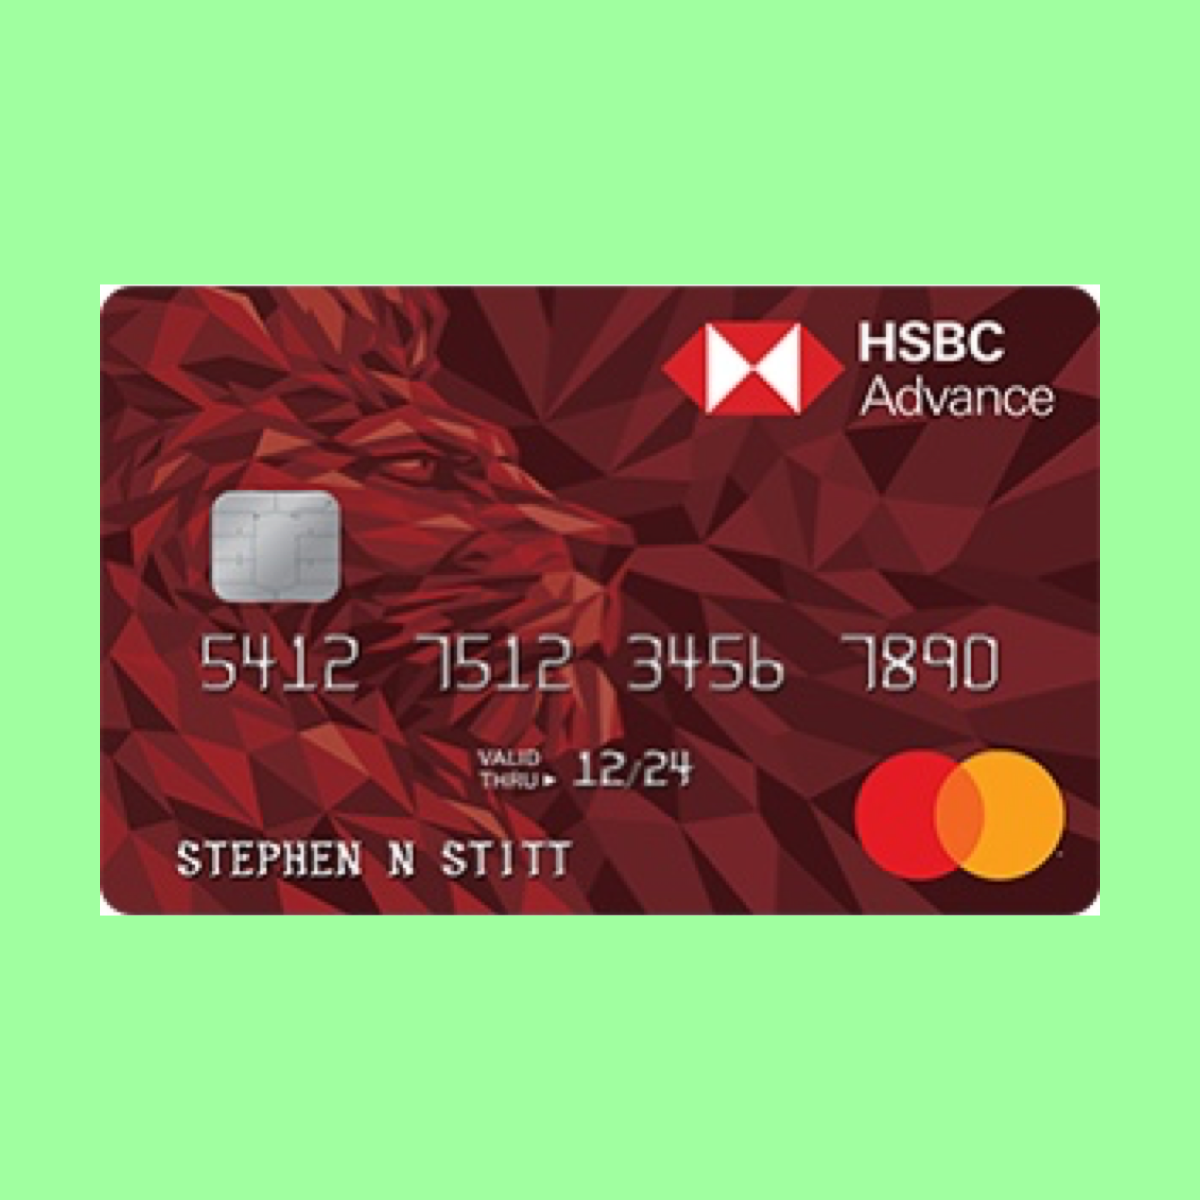 How To Transfer Money From Hsbc